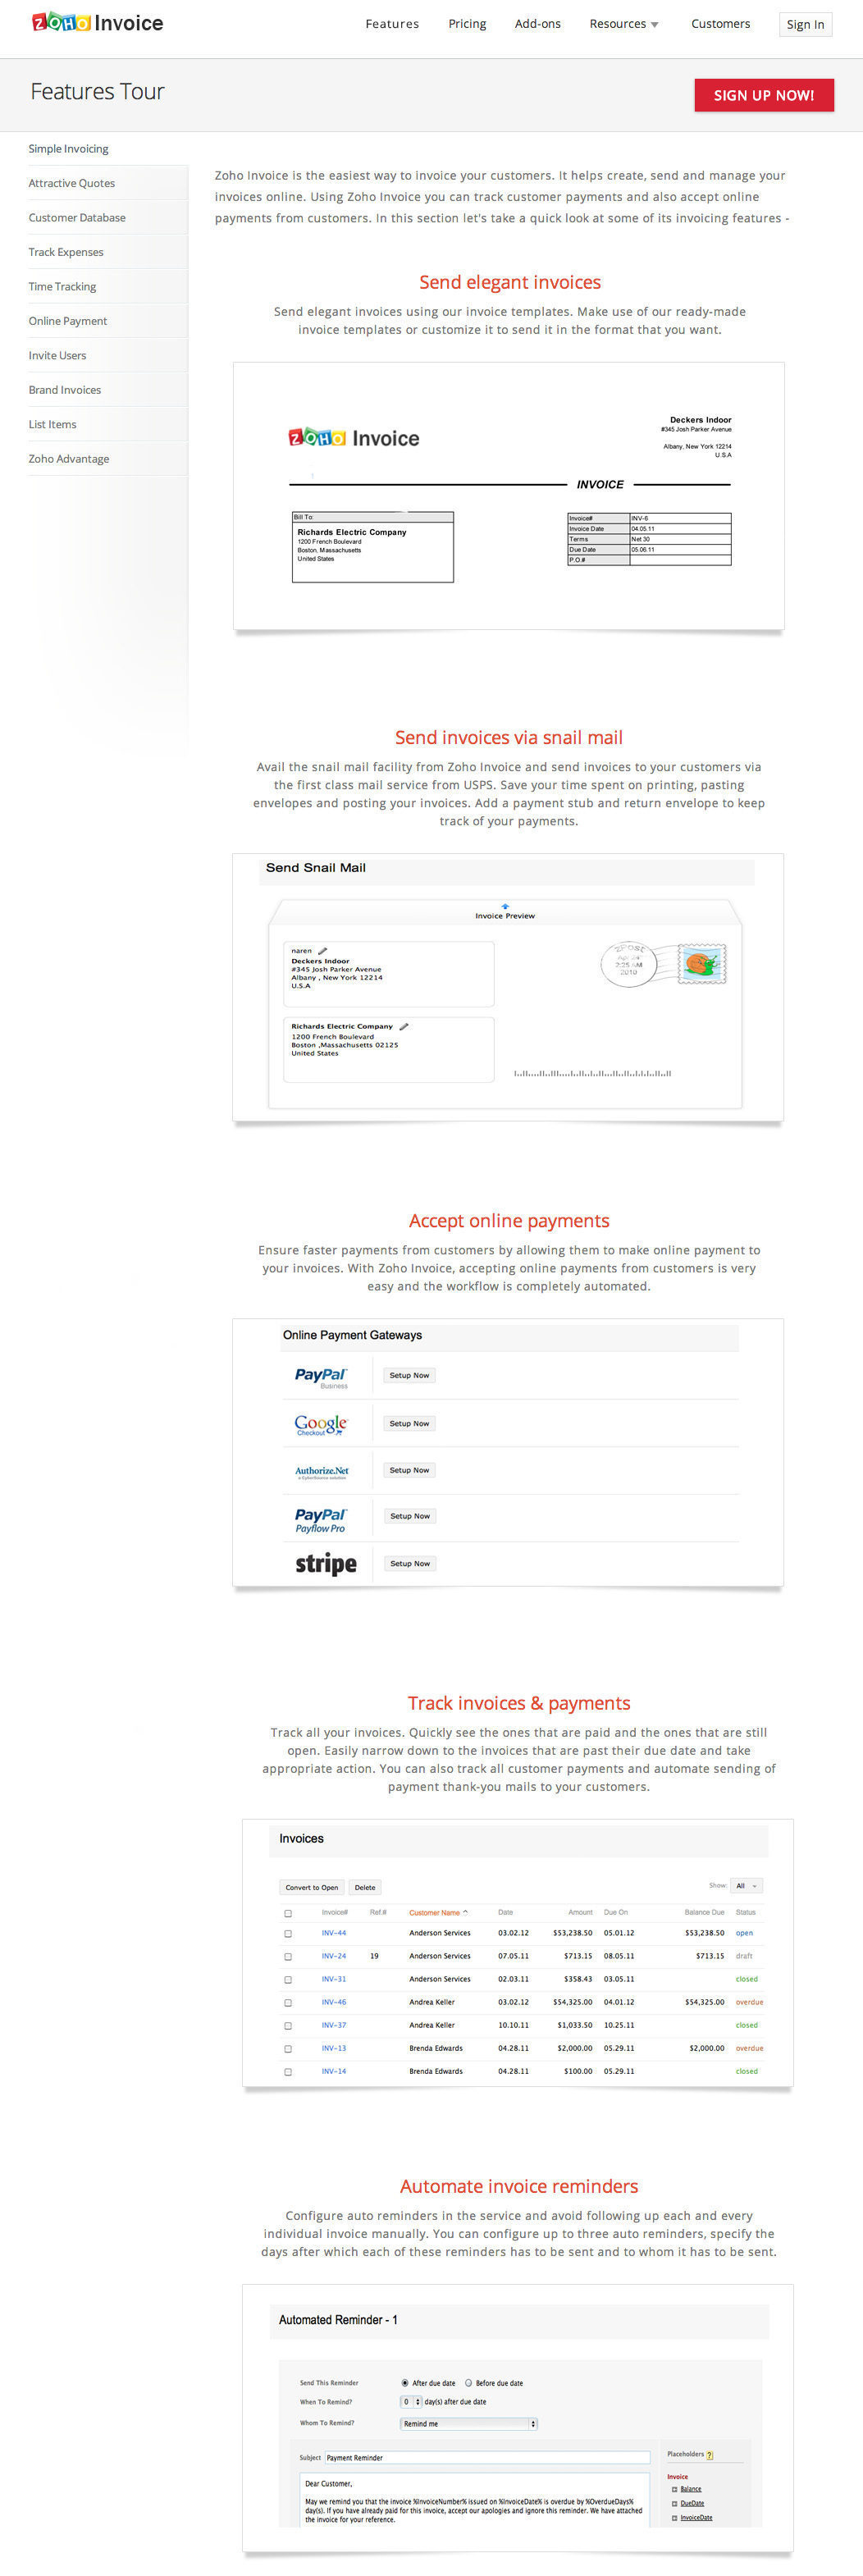 Opposenewapstandardsus  Stunning Top  Complaints And Reviews About Zoho Invoice With Inspiring Zoho Invoice Pricing Zoho Invoice  Simple Invoicing  With Awesome Mac Invoice Software Also Electrical Invoice Template In Addition Sponsorship Invoice And Is An Invoice A Contract As Well As Jeep Wrangler Invoice Price Additionally Find Dealer Invoice From Consumeraffairscom With Opposenewapstandardsus  Inspiring Top  Complaints And Reviews About Zoho Invoice With Awesome Zoho Invoice Pricing Zoho Invoice  Simple Invoicing  And Stunning Mac Invoice Software Also Electrical Invoice Template In Addition Sponsorship Invoice From Consumeraffairscom